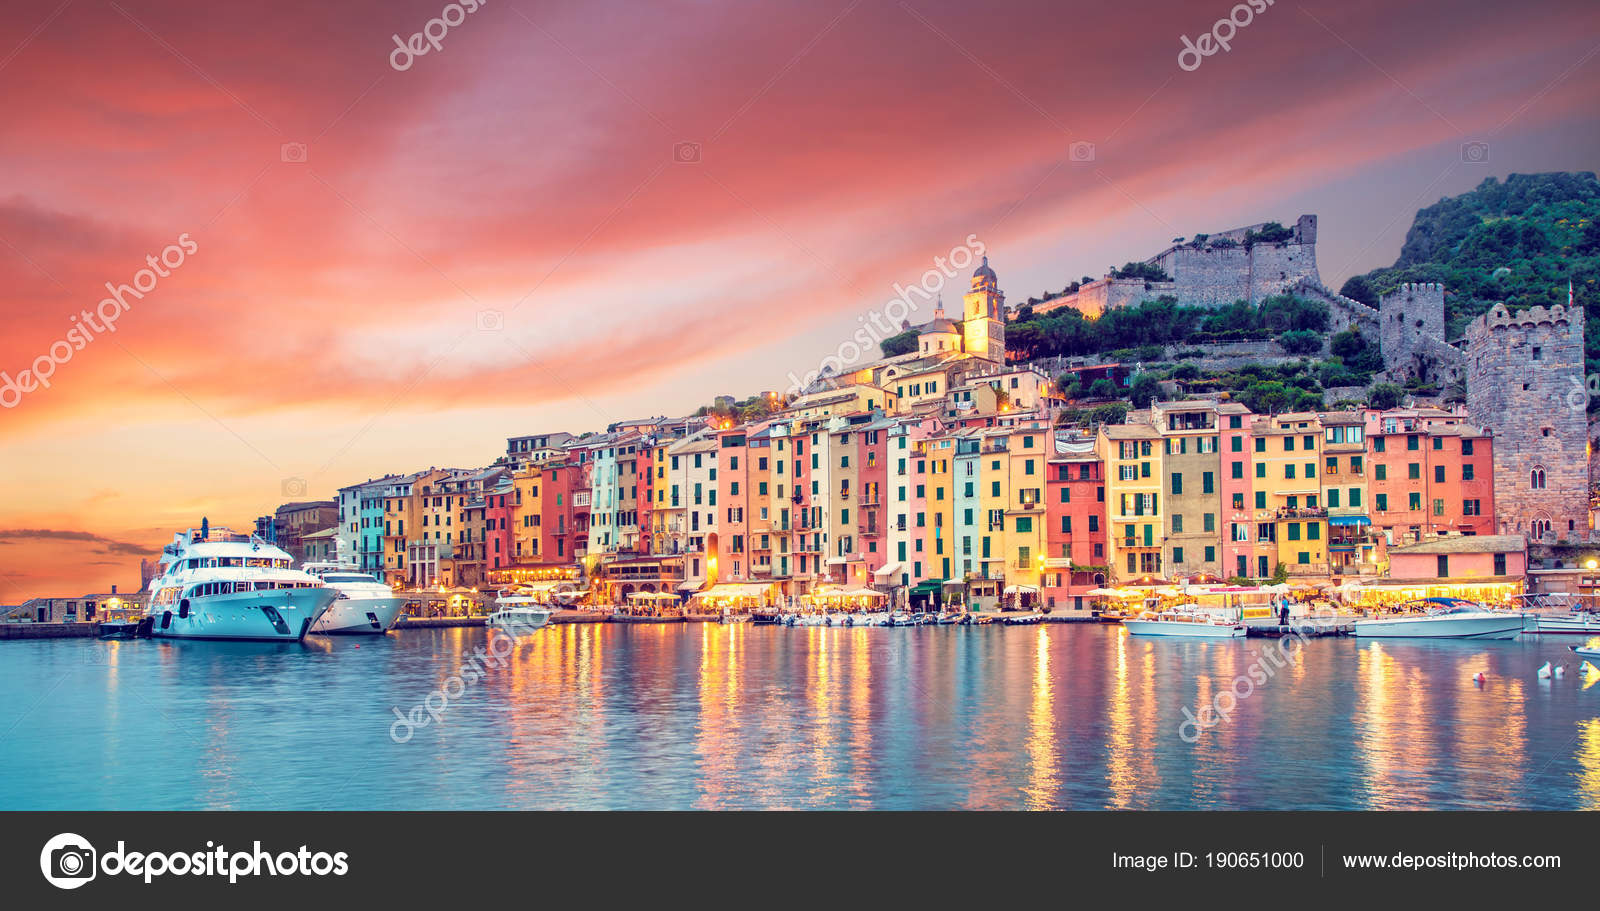 Mystic landscape of the harbor with colorful houses in the boats ...